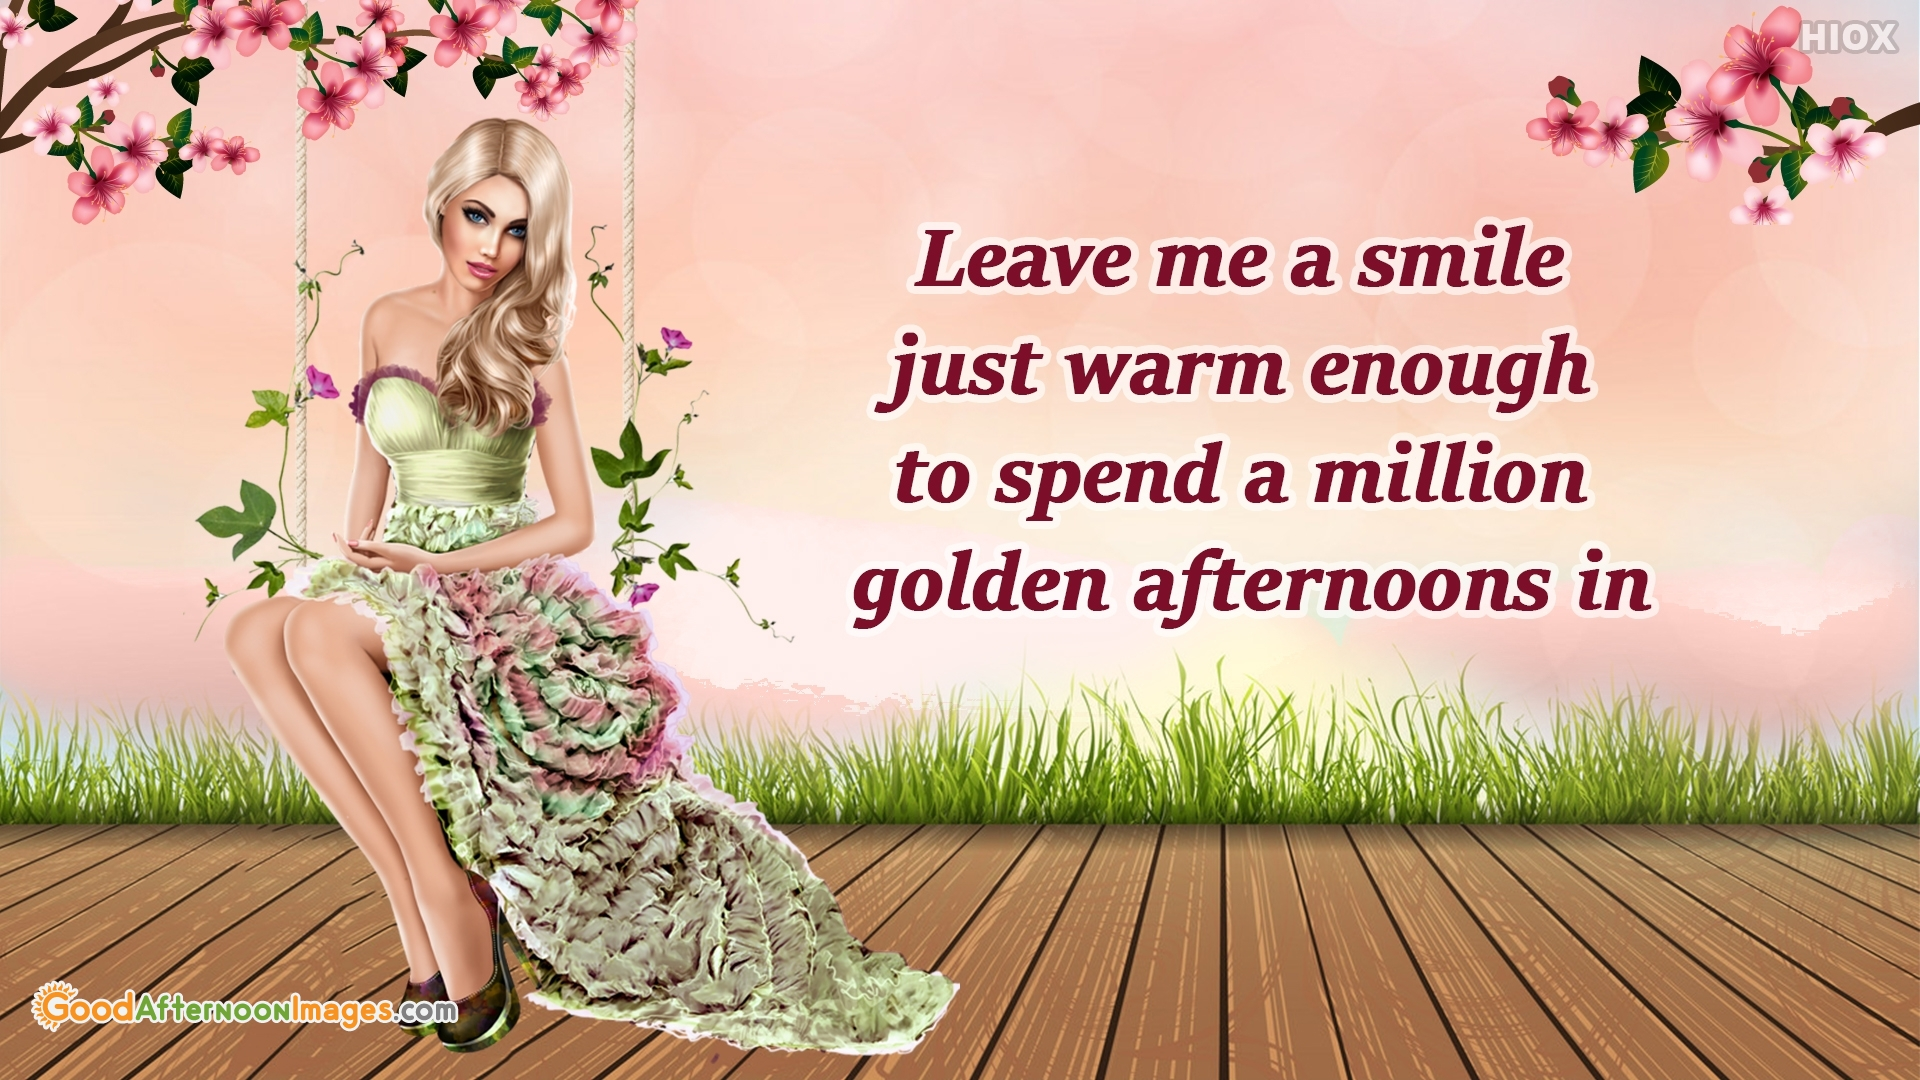 Good Afternoon Leave Me A Smile Quotes